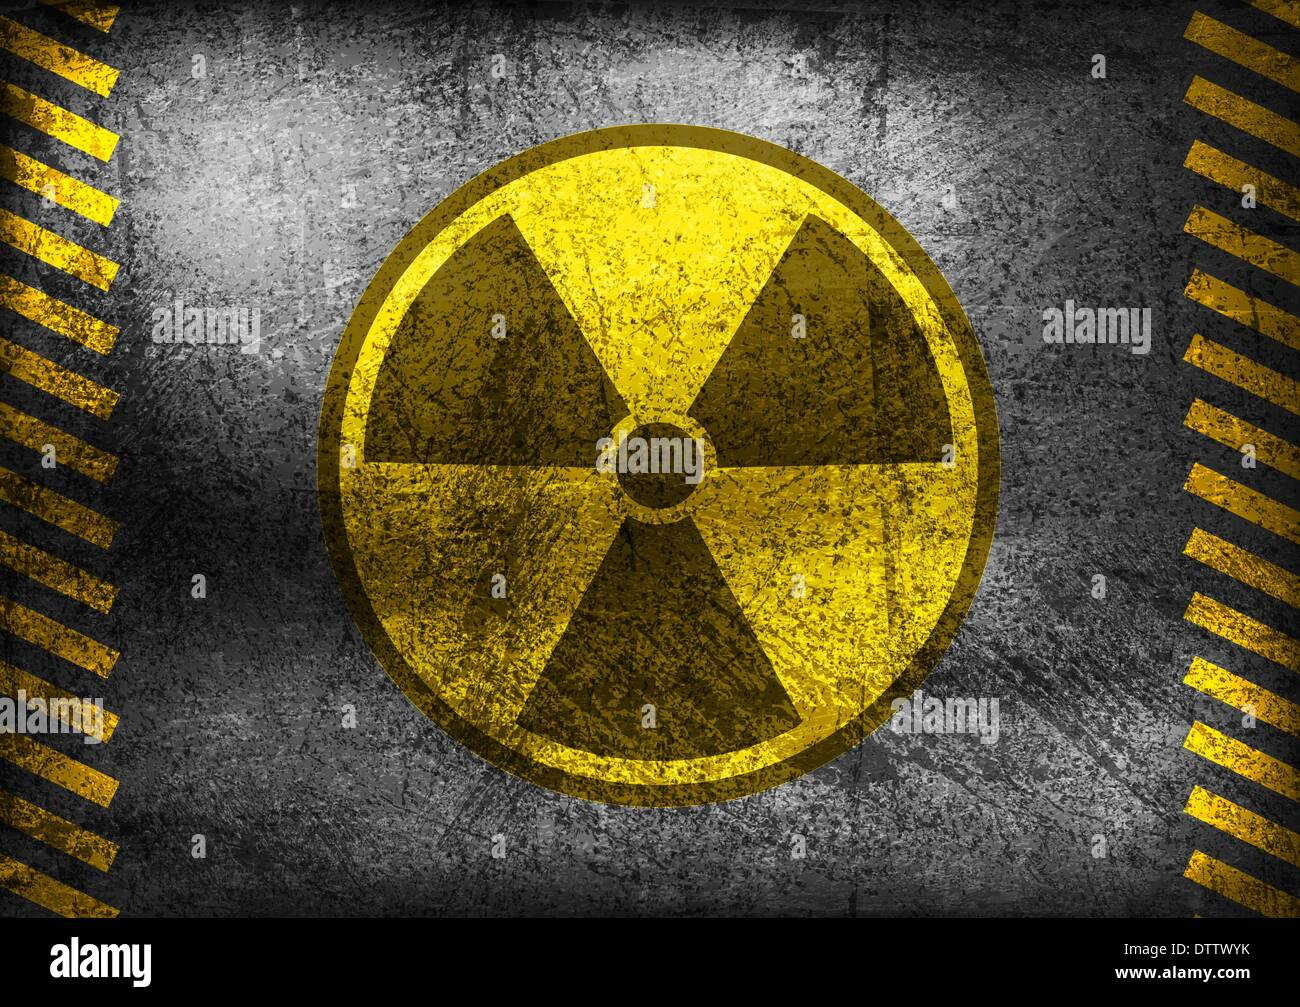 Nuclear radiation symbol on grunge wall - Stock Image